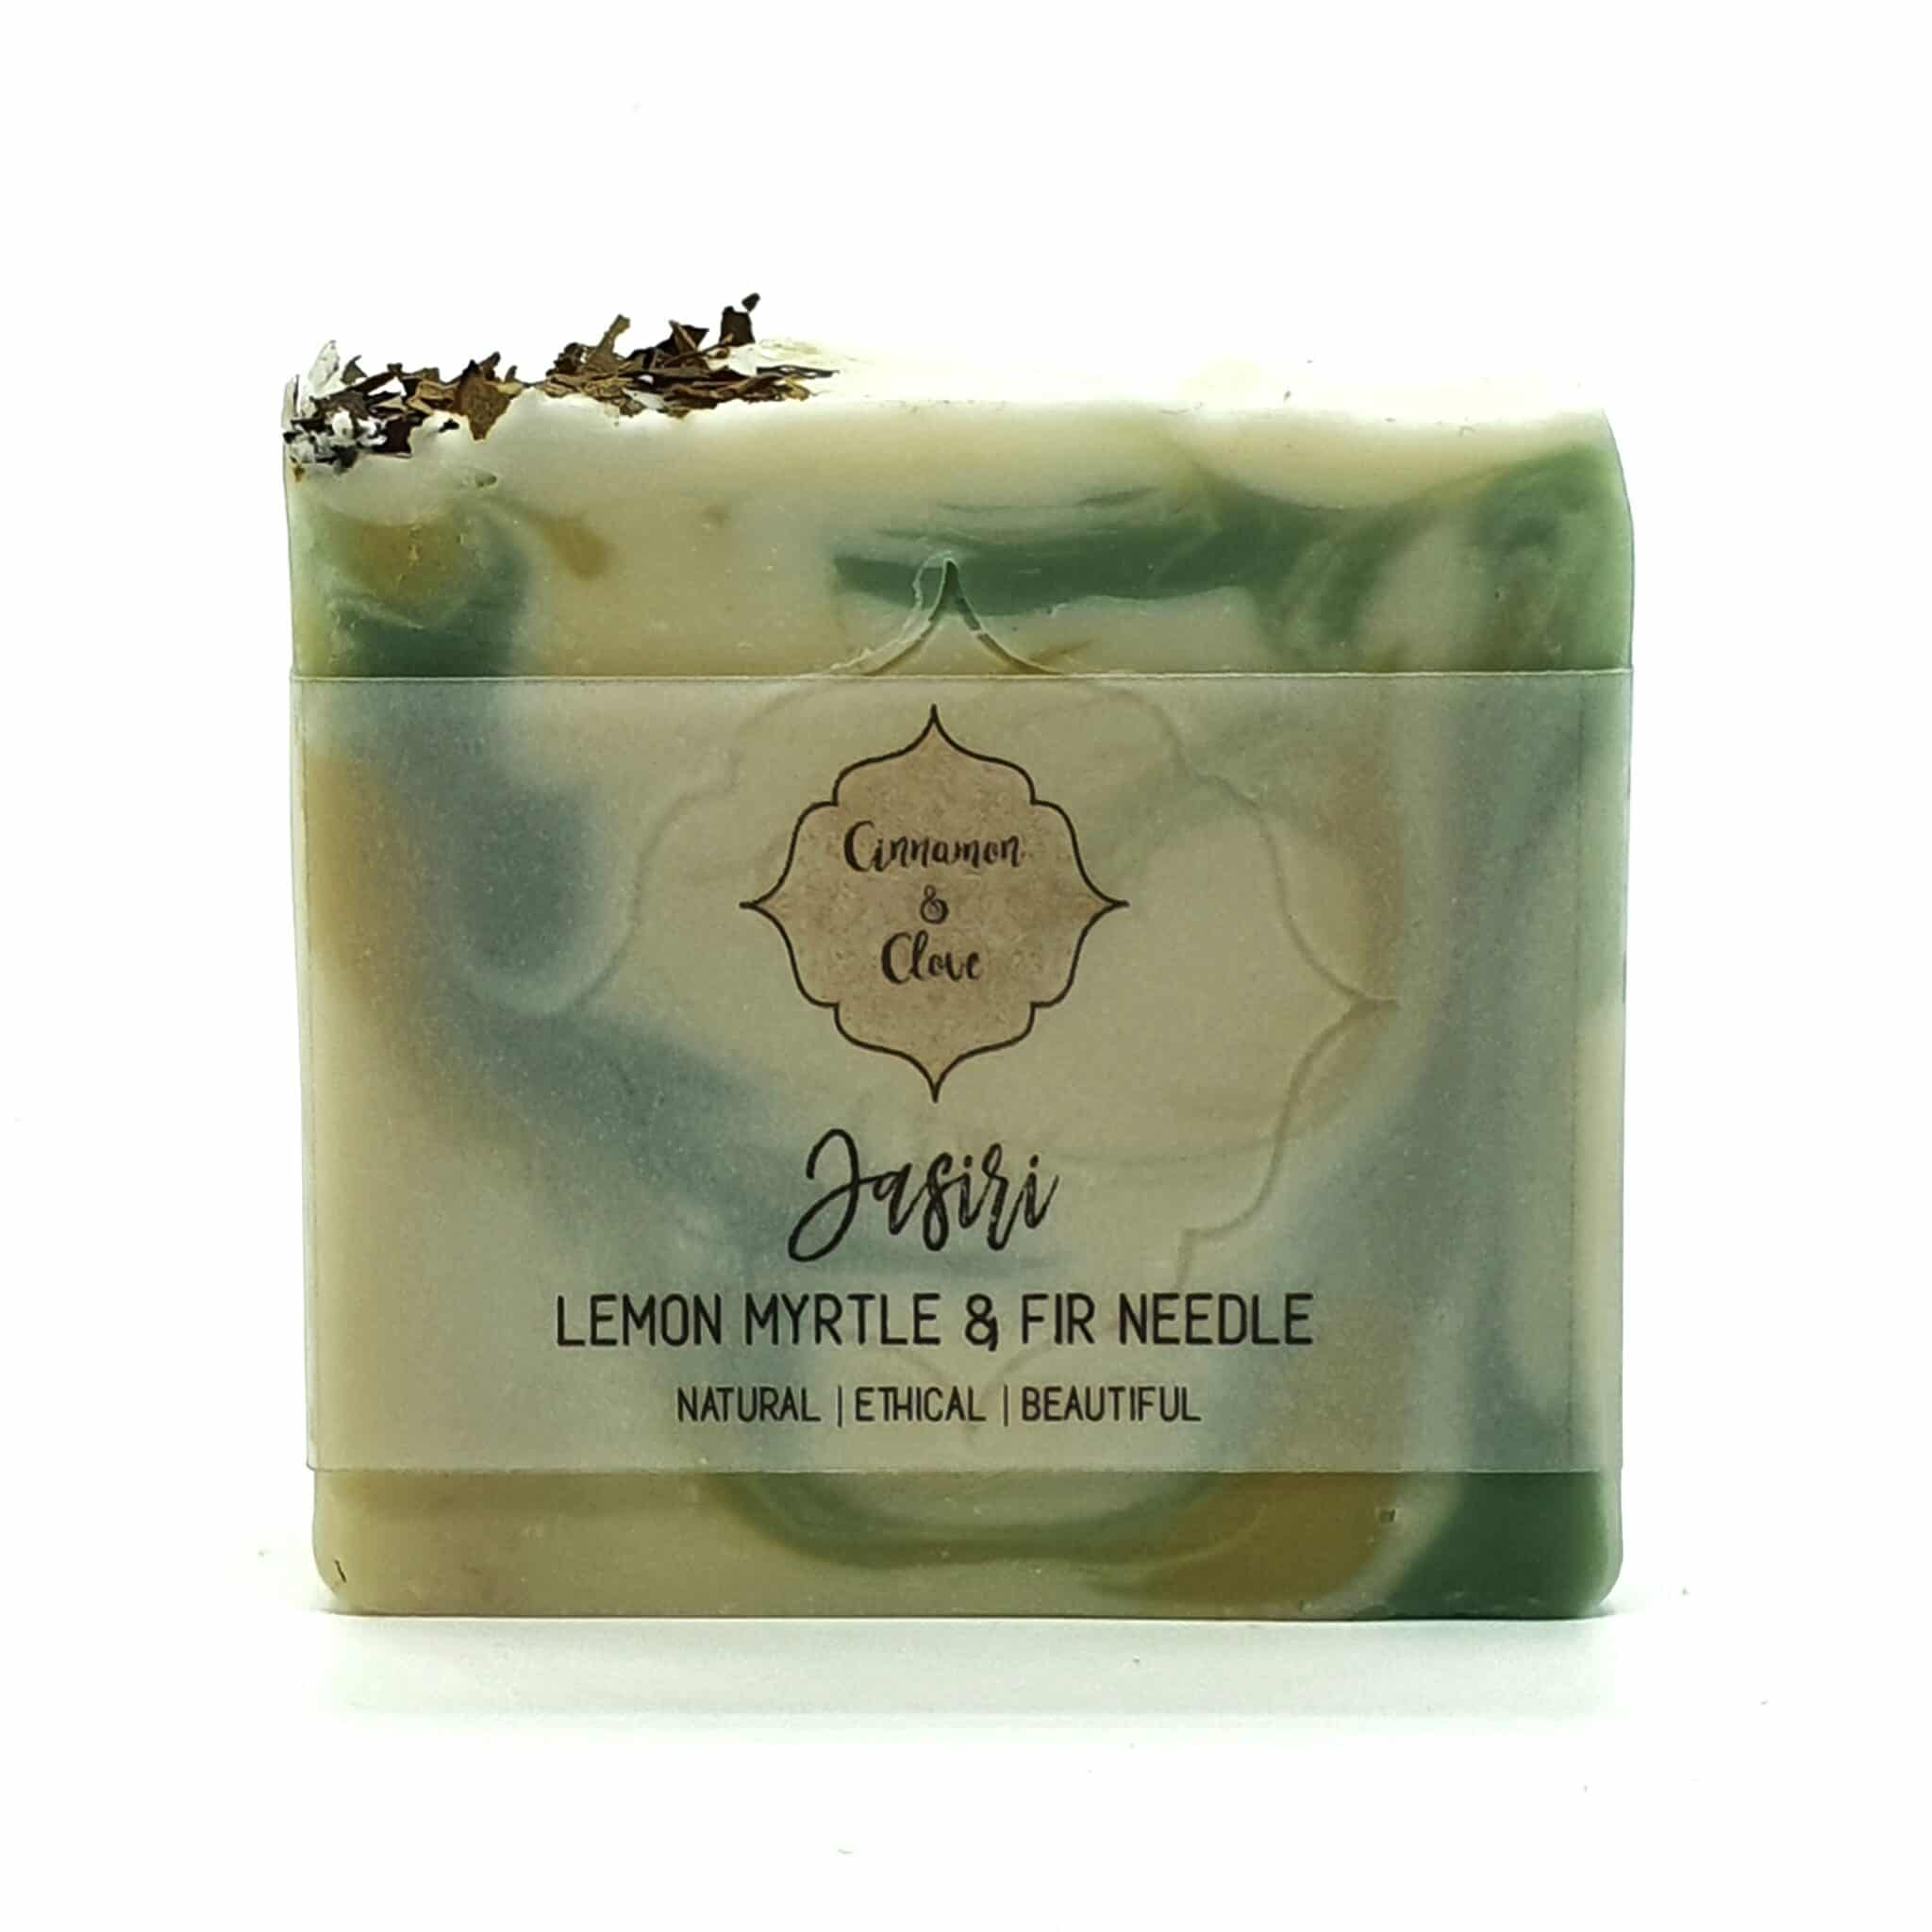 Jasiri – Handcrafted All Natural Artisan Lemon Myrtle & Pine Soap By Cinnamon And Clove